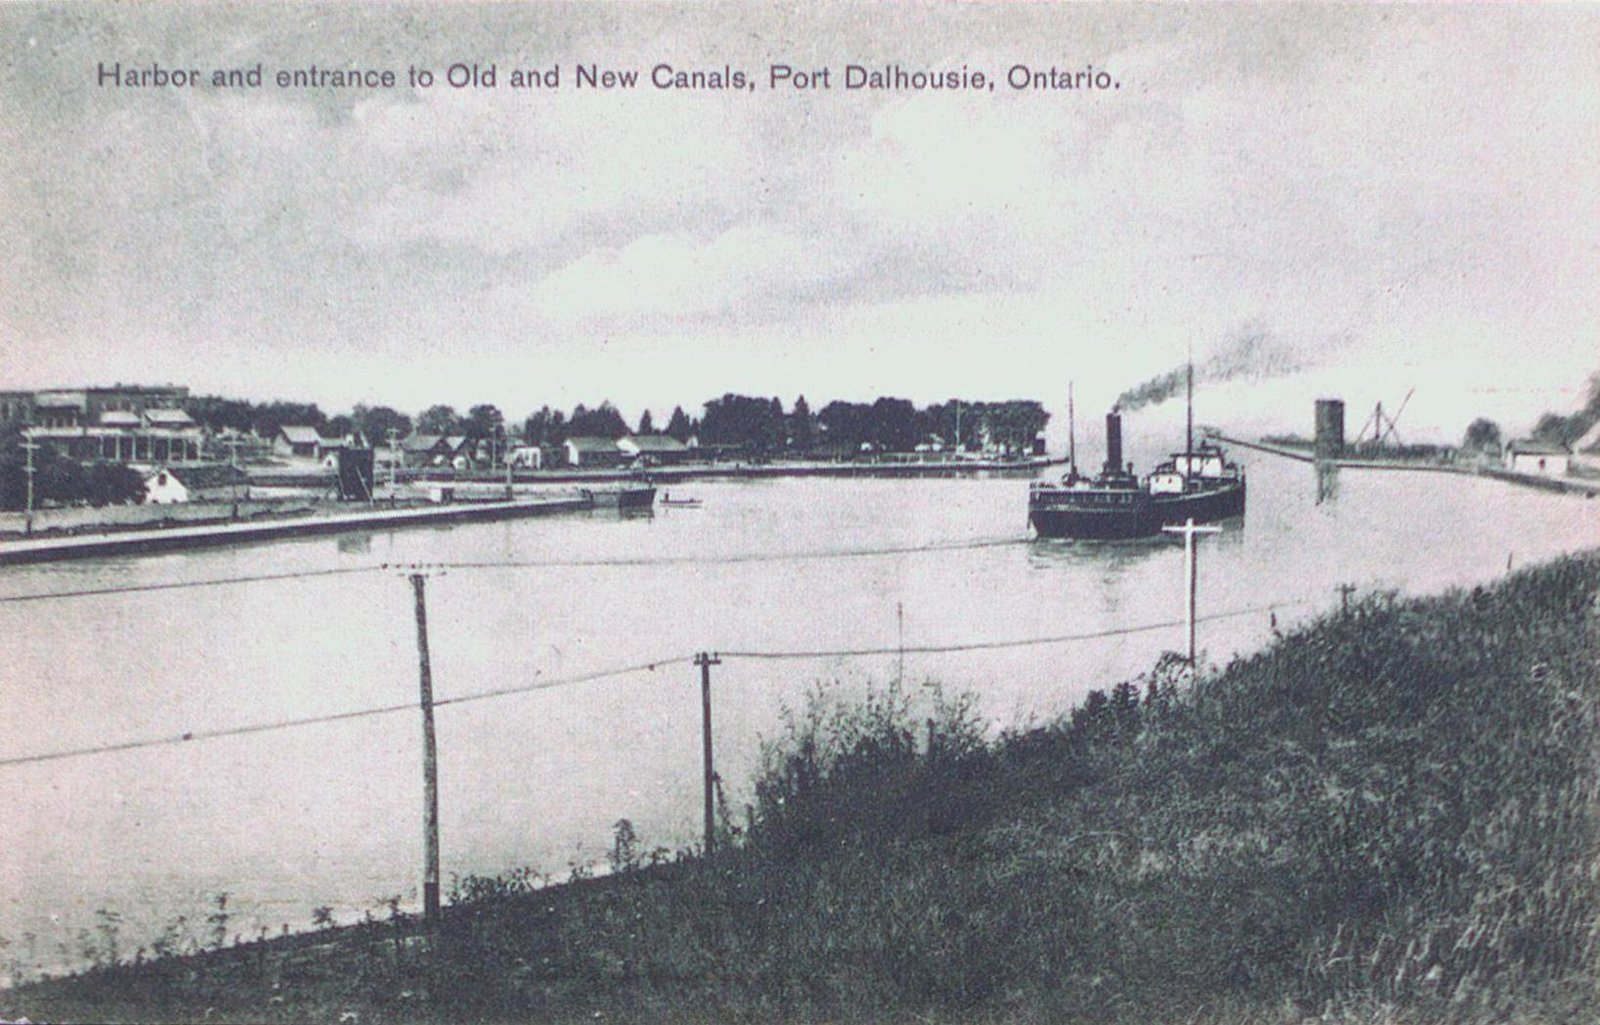 Port Dalhousie Harbour and Entrance to the Old and New Canals